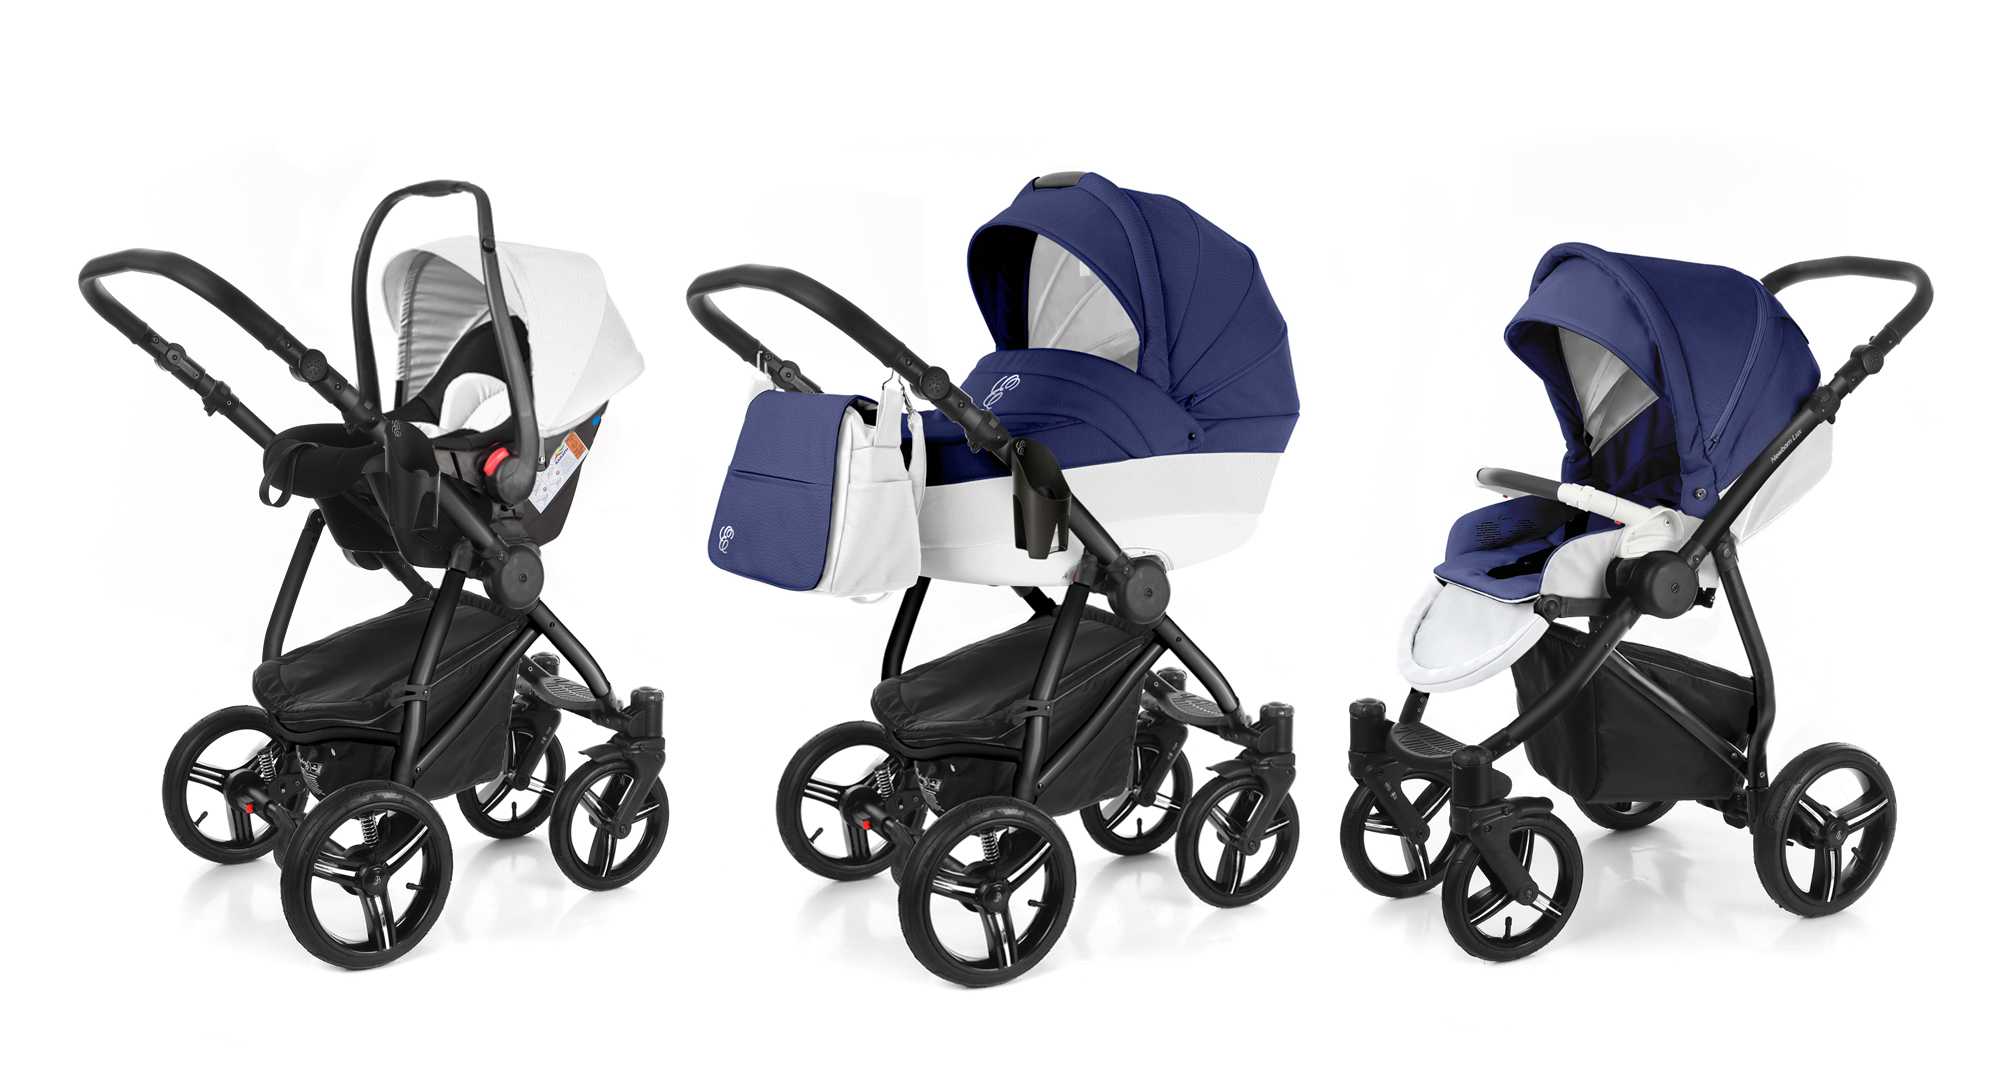 Коляска 3 в 1 Esspero Grand Newborn Lux (шасси Black). Фото N4